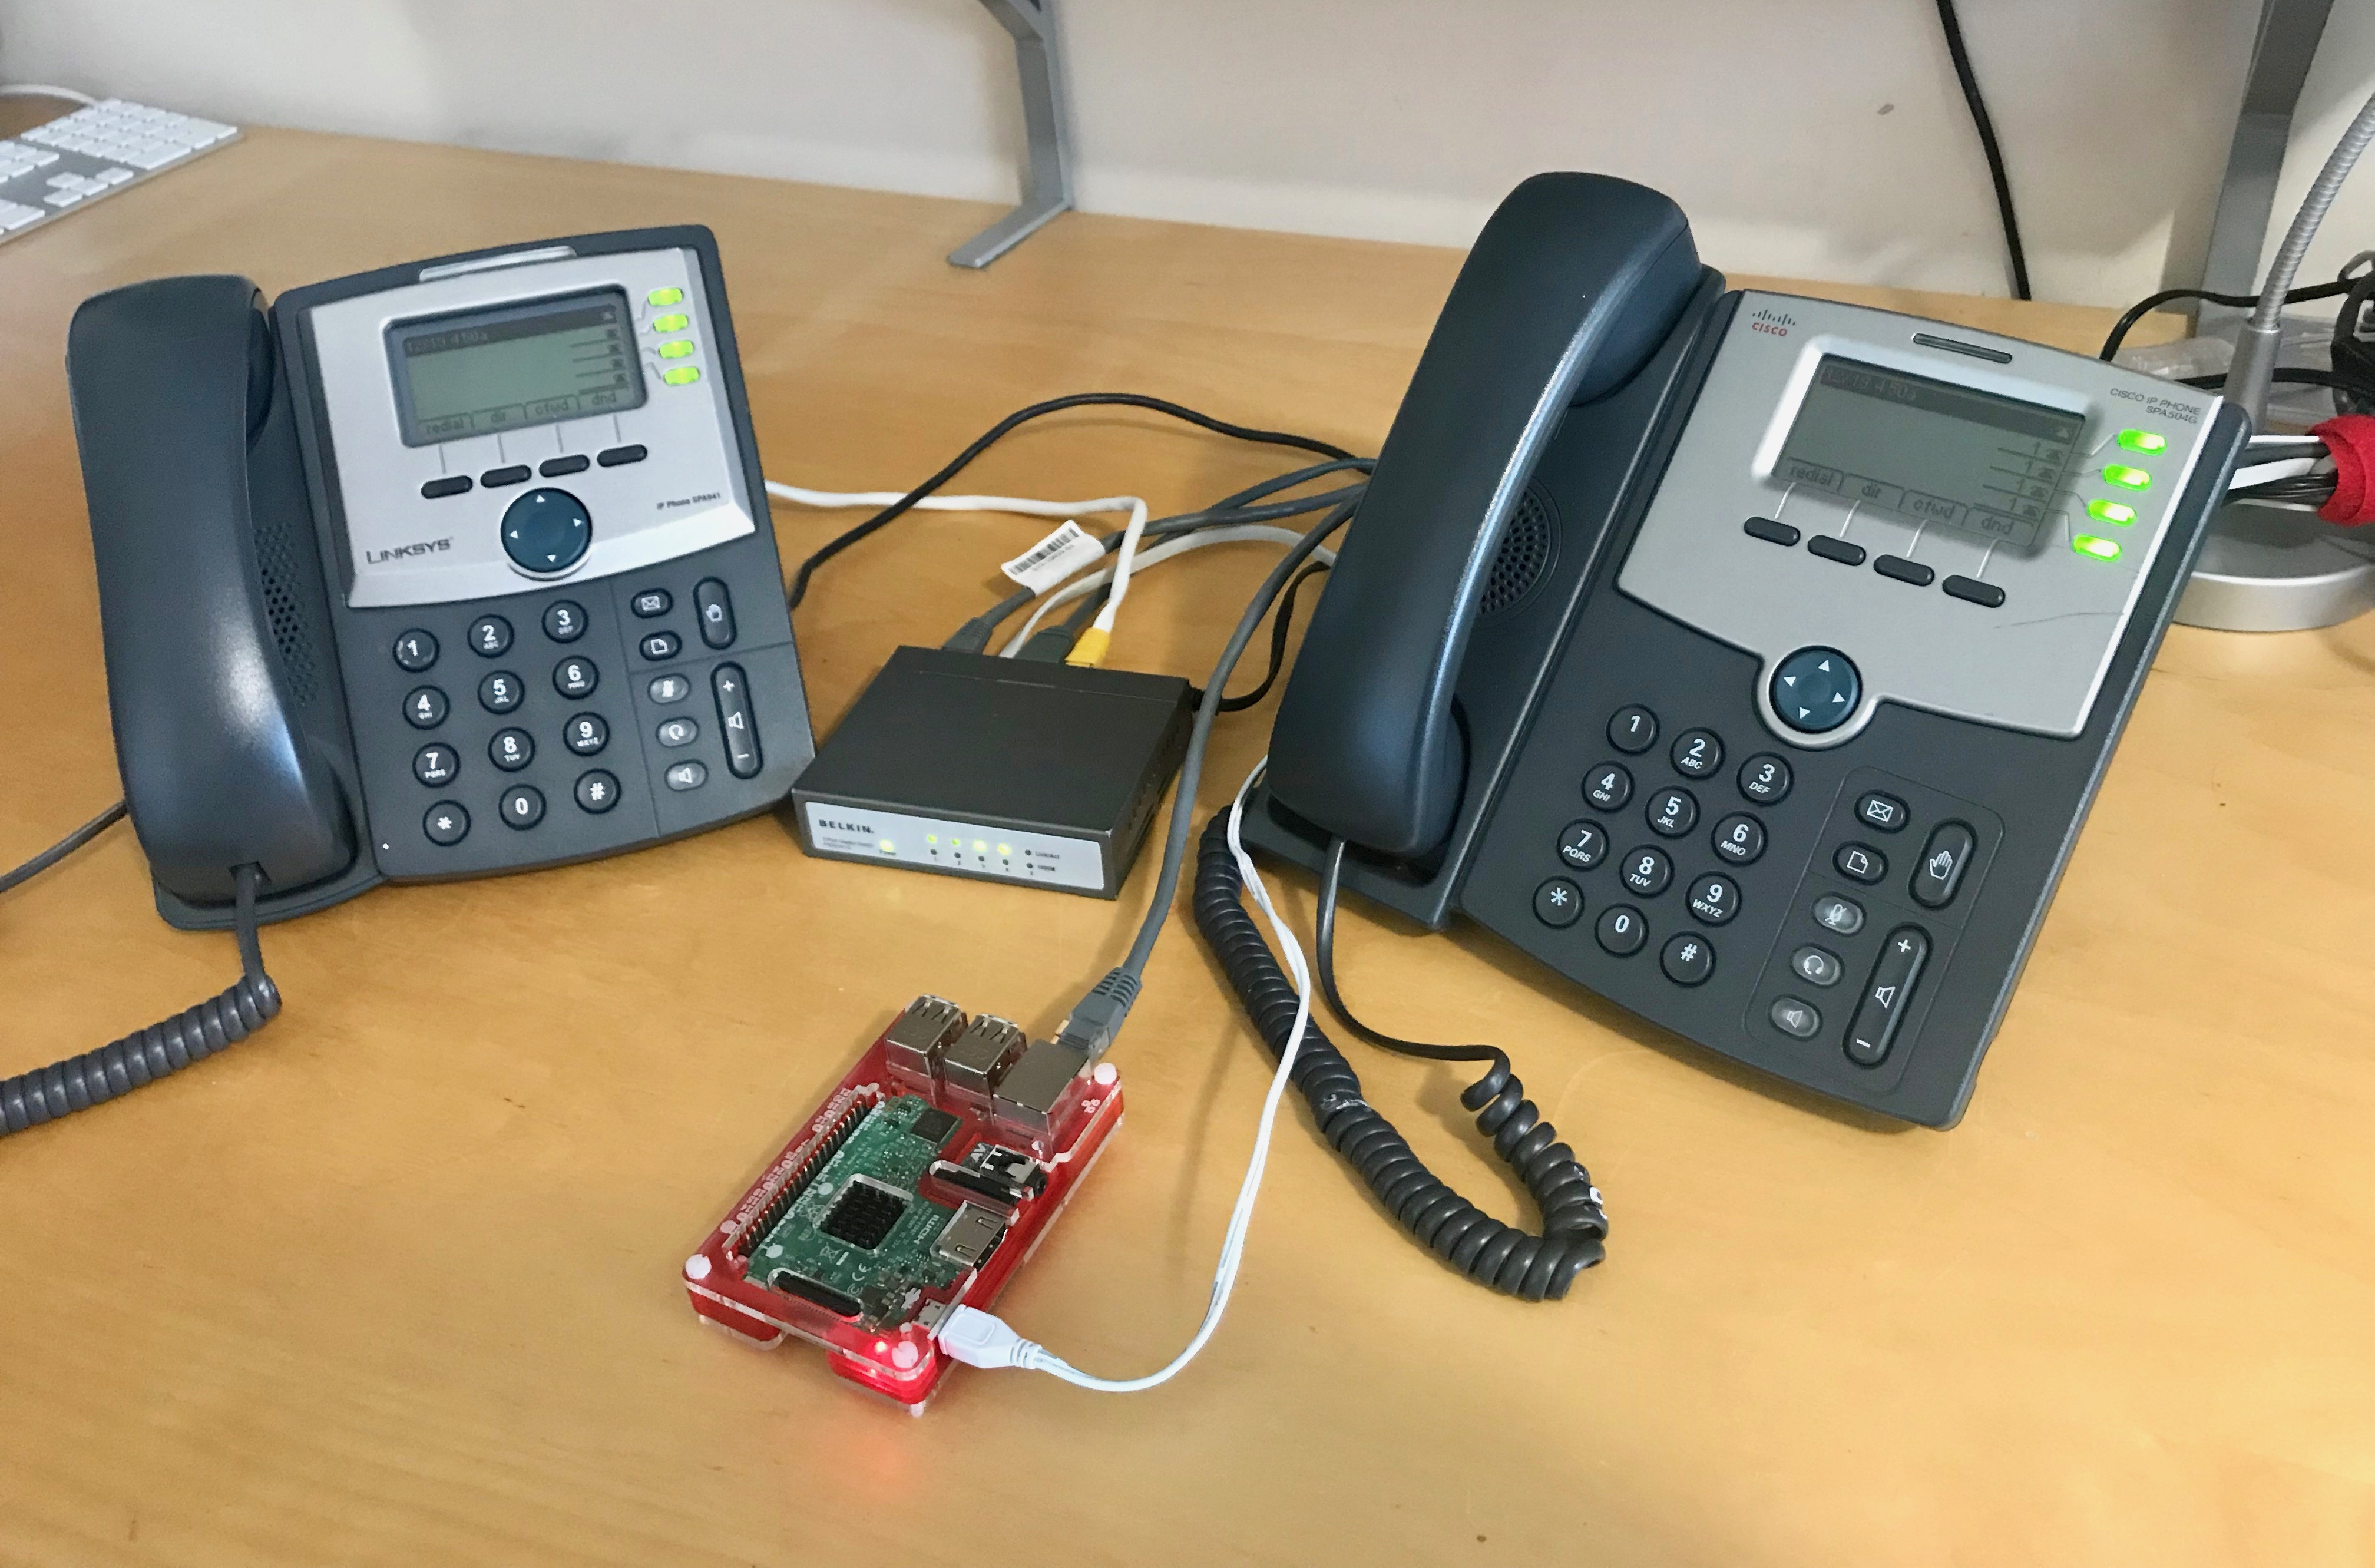 Build a Raspberry Pi telephone exchange - The MagPi